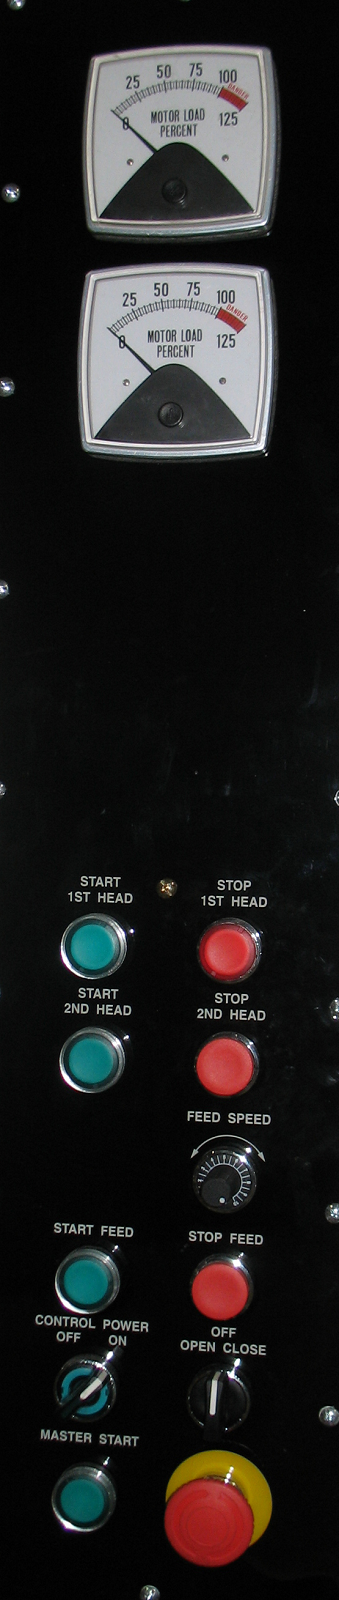 control_panel.png